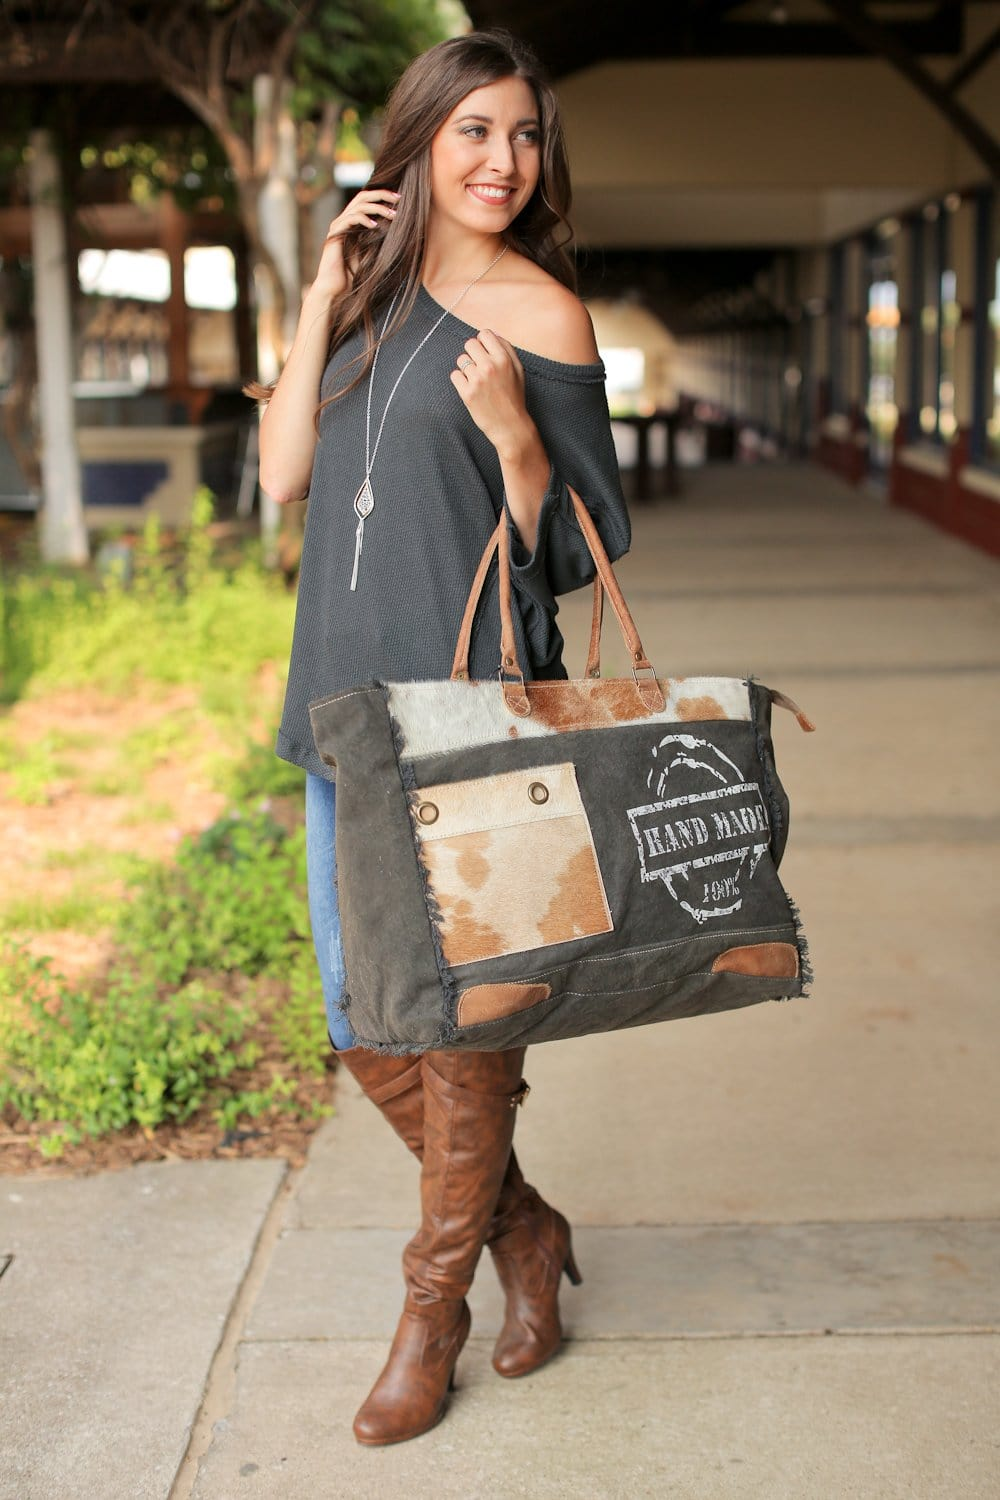 THE MONTANA WEEKENDER BAG - Infinity Raine